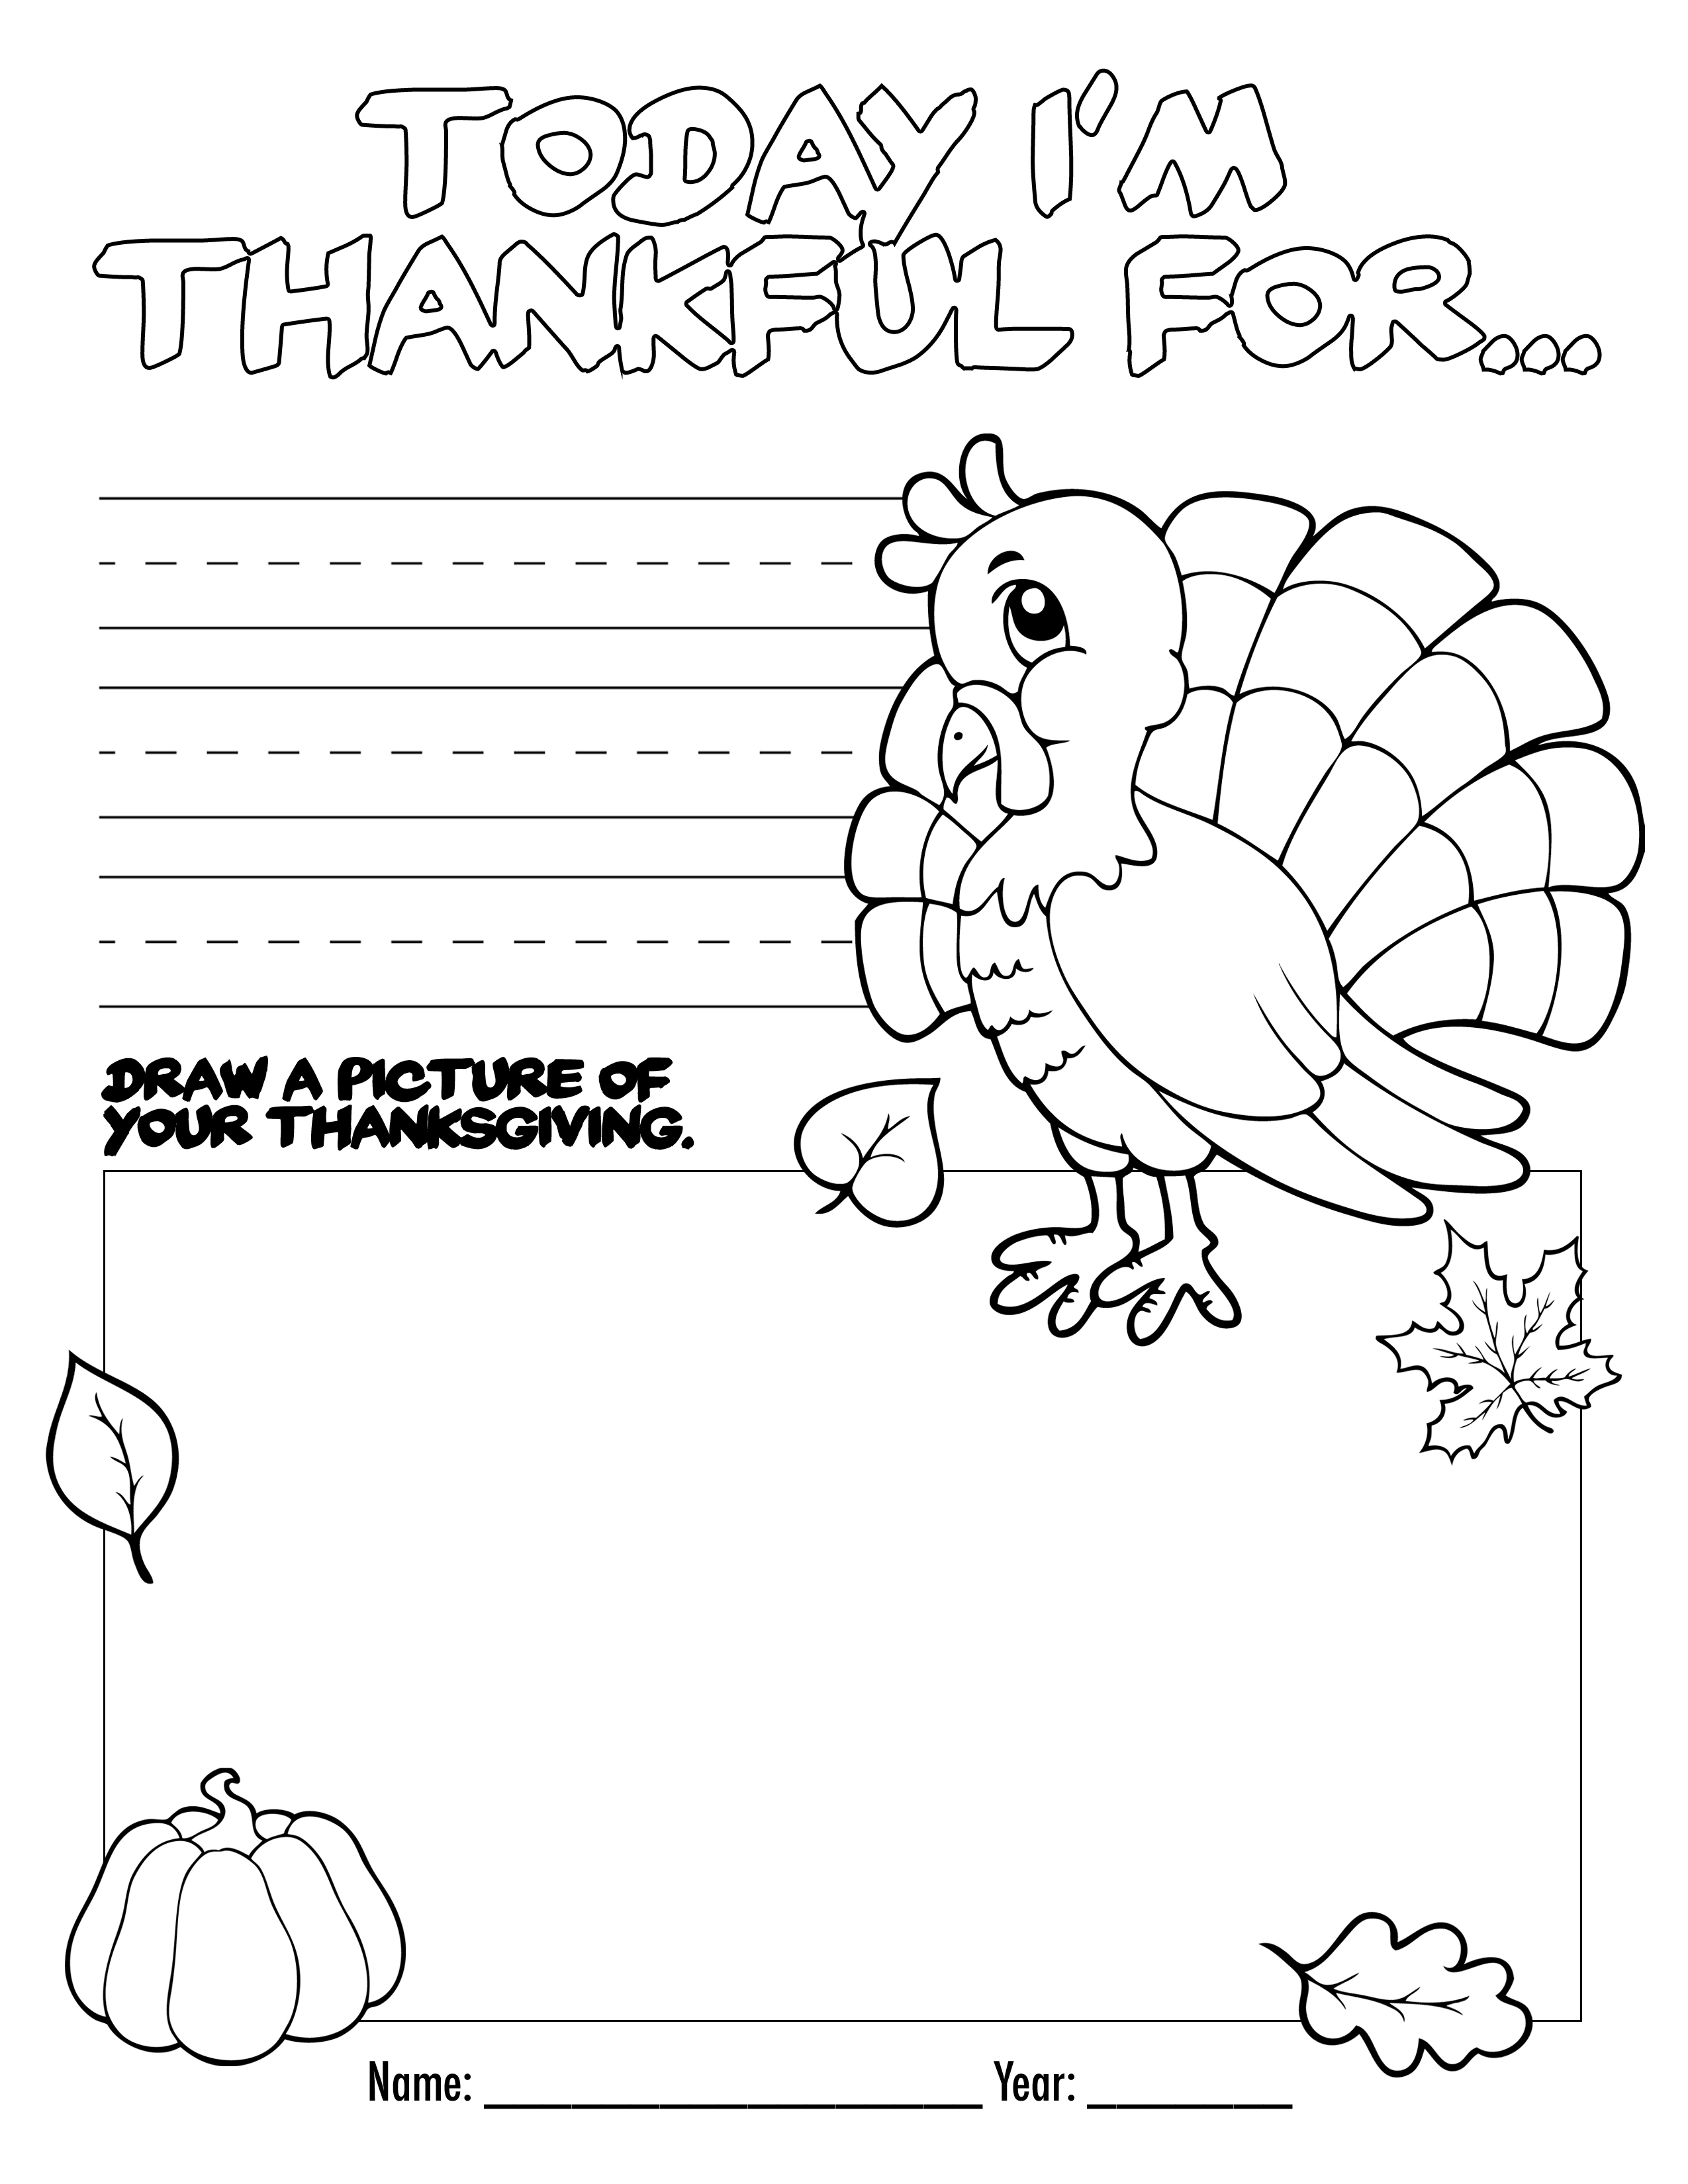 Thanksgiving Coloring Book Free Printable For The Kids! - Free Printable Thanksgiving Worksheets